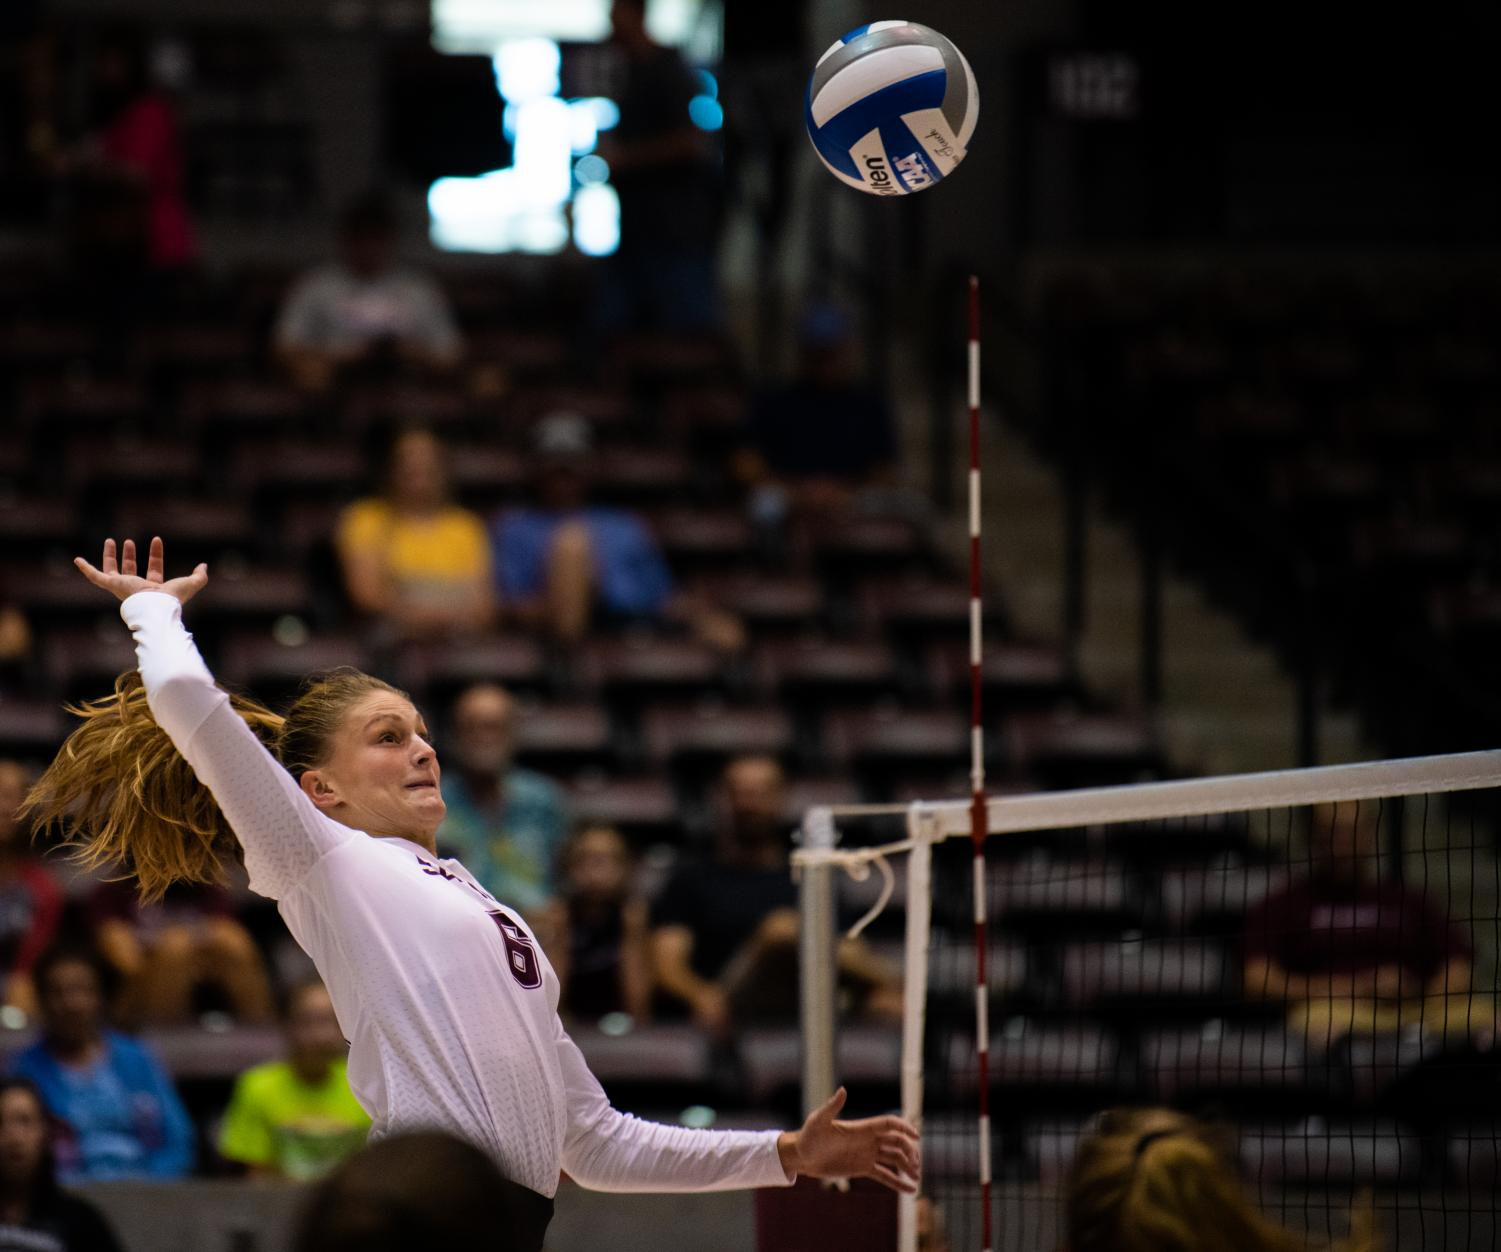 Sophomore+outside+hitter+Hannah%0ABecker+goes+to+spike+the+ball+on+Saturday%2C+Sept.+7%2C+2019+during+the+Salukis%E2%80%99+3-1+win+against+the+Southeastern+Louisiana+University+Lions+at+the+Banterra+Center.+